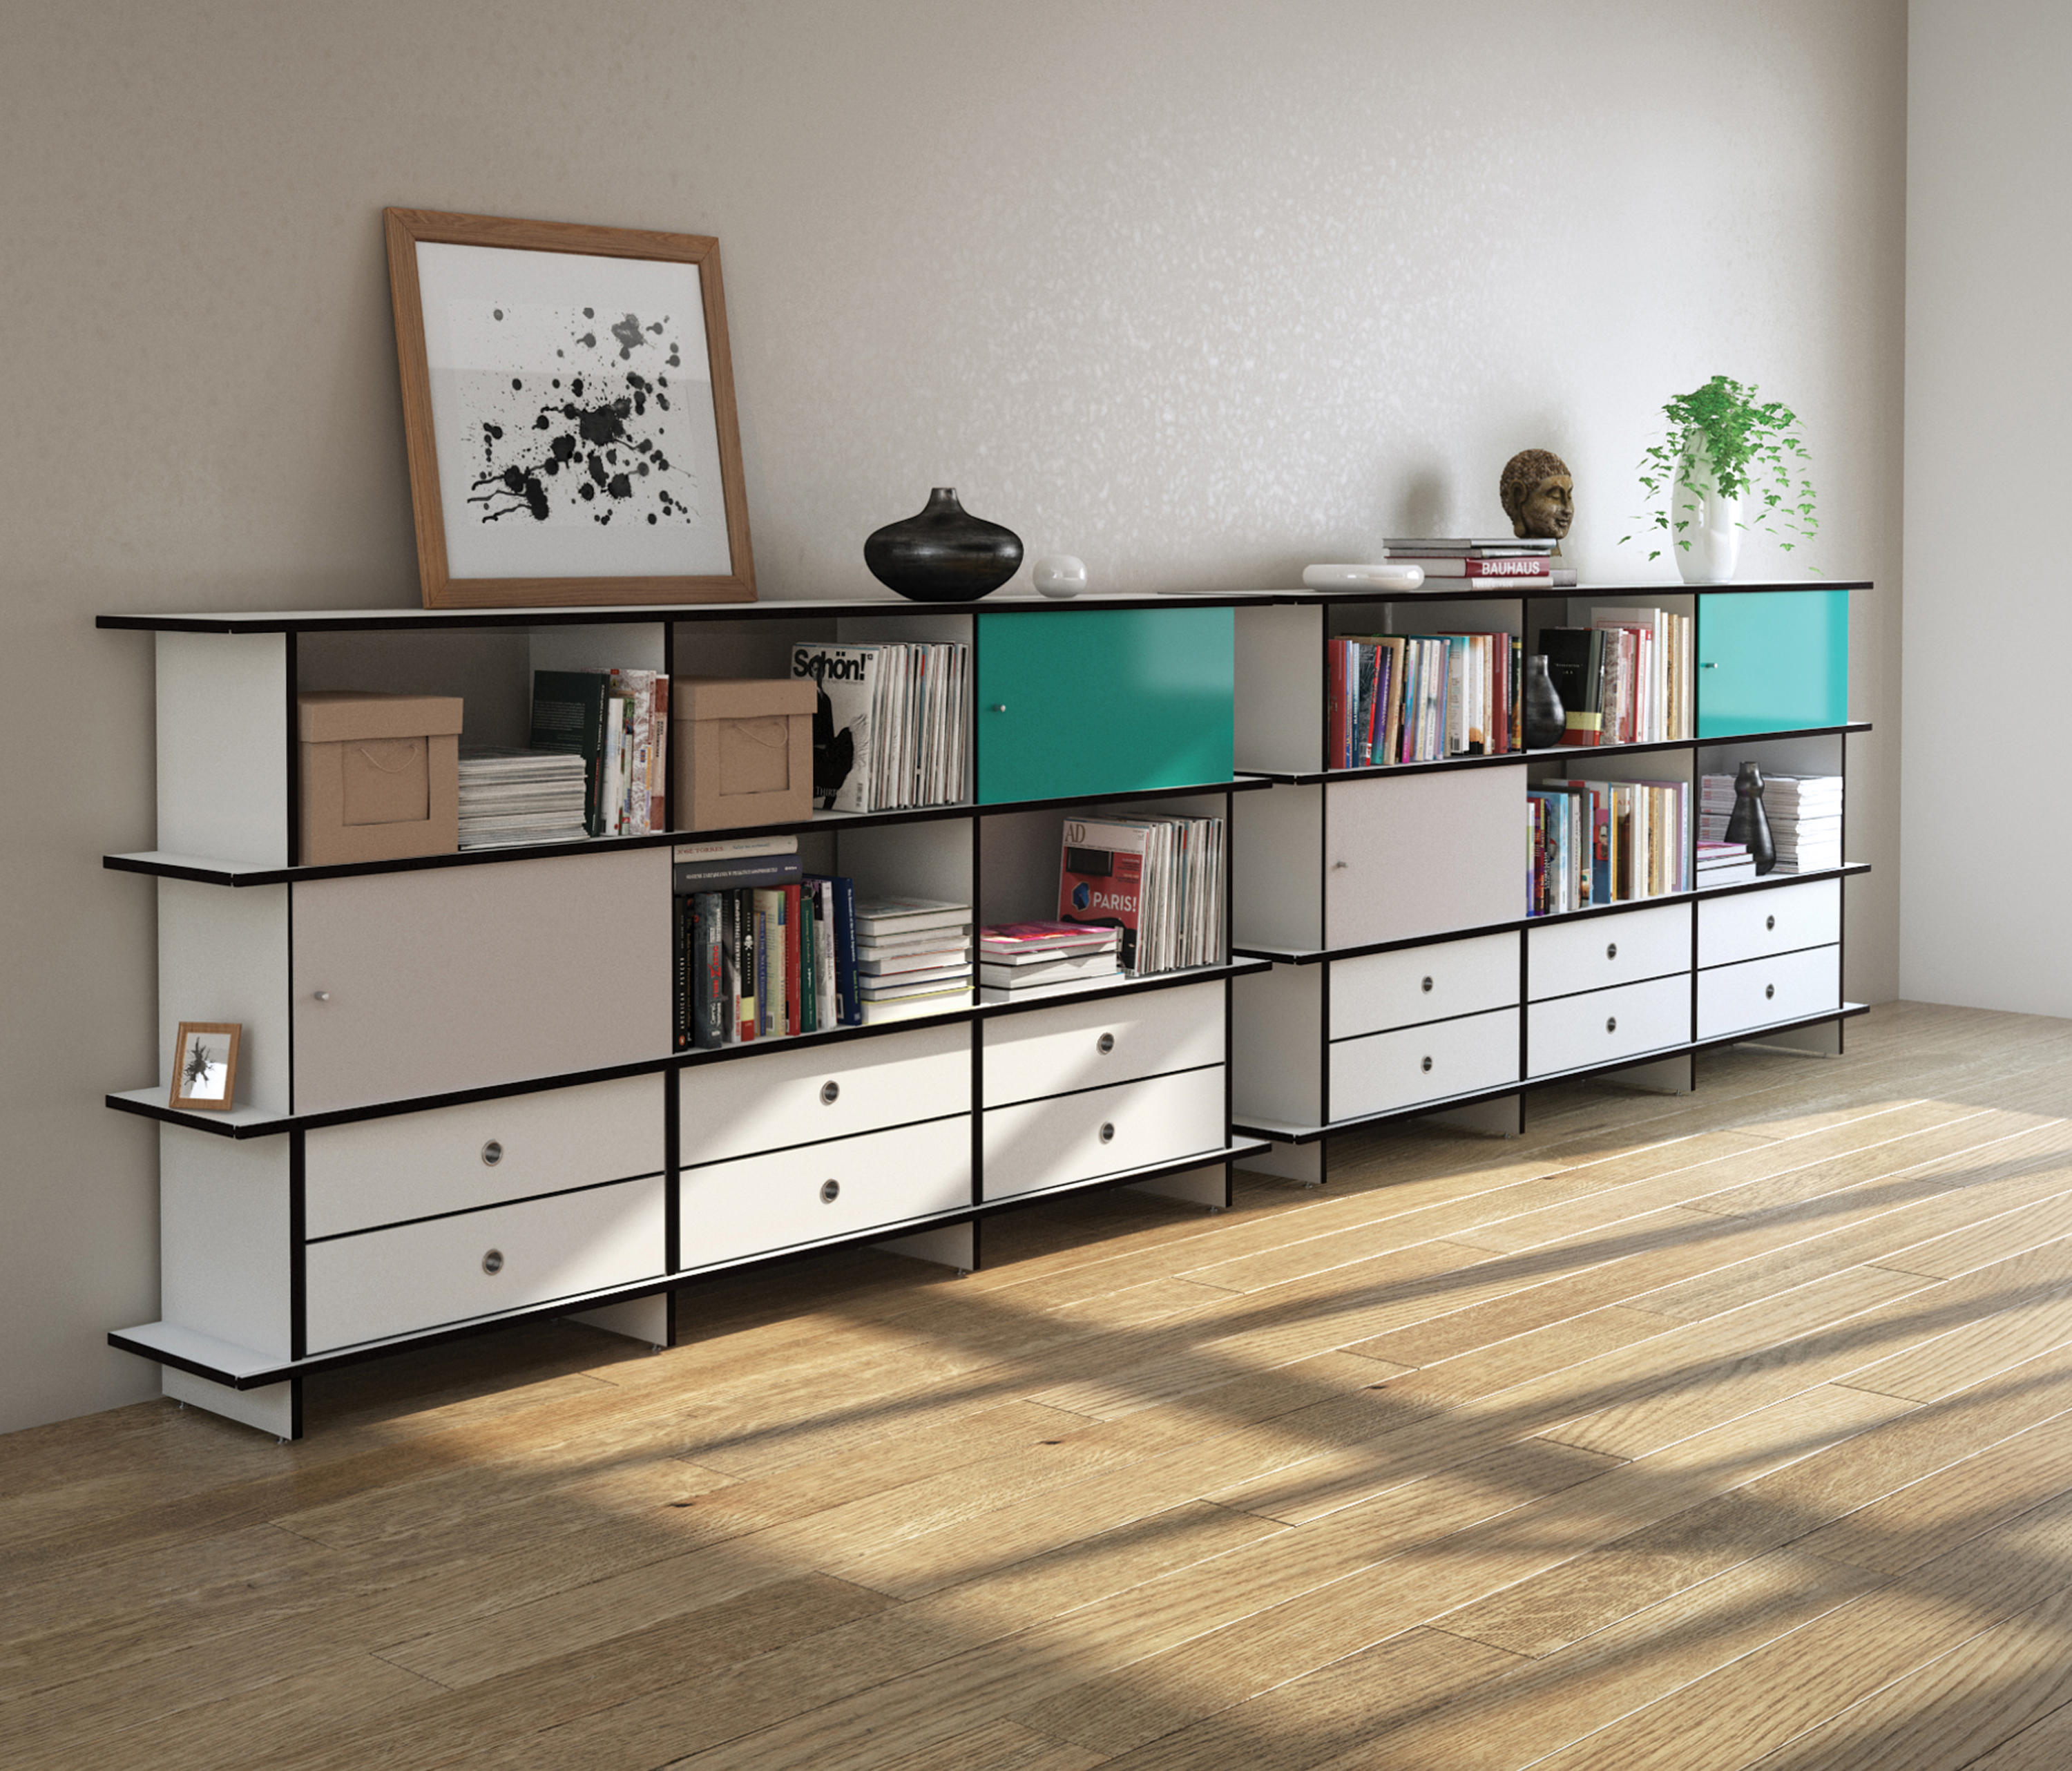 Oliver Conrad qr a nb sideboard sideboards from oliver conrad architonic